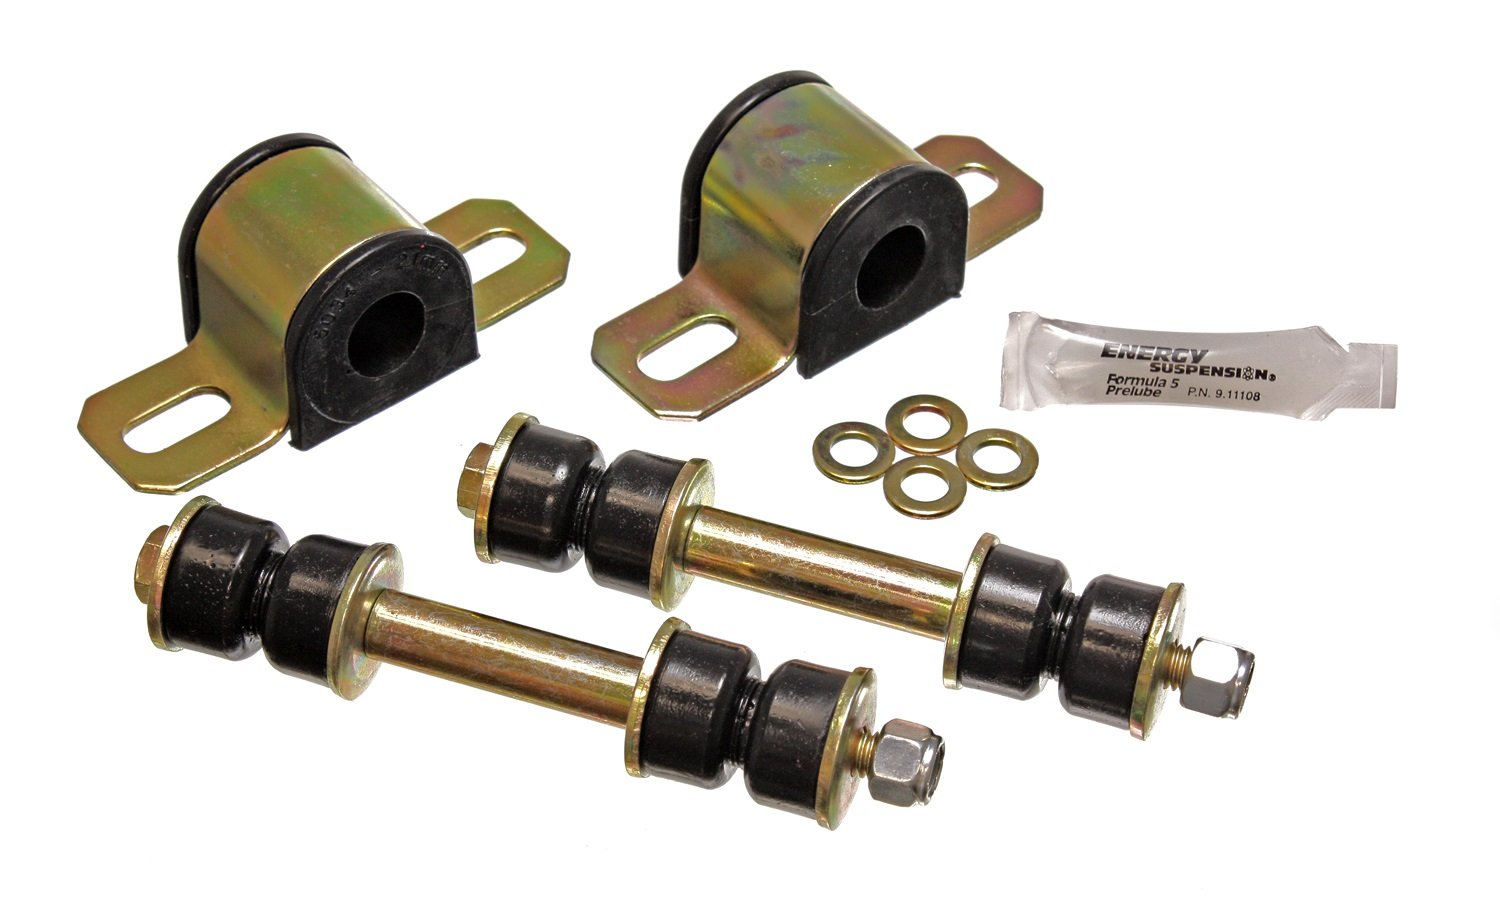 Energy Suspension 3.5146G Rear 23mm Stabilizer Bar Set for GM by Energy Suspension